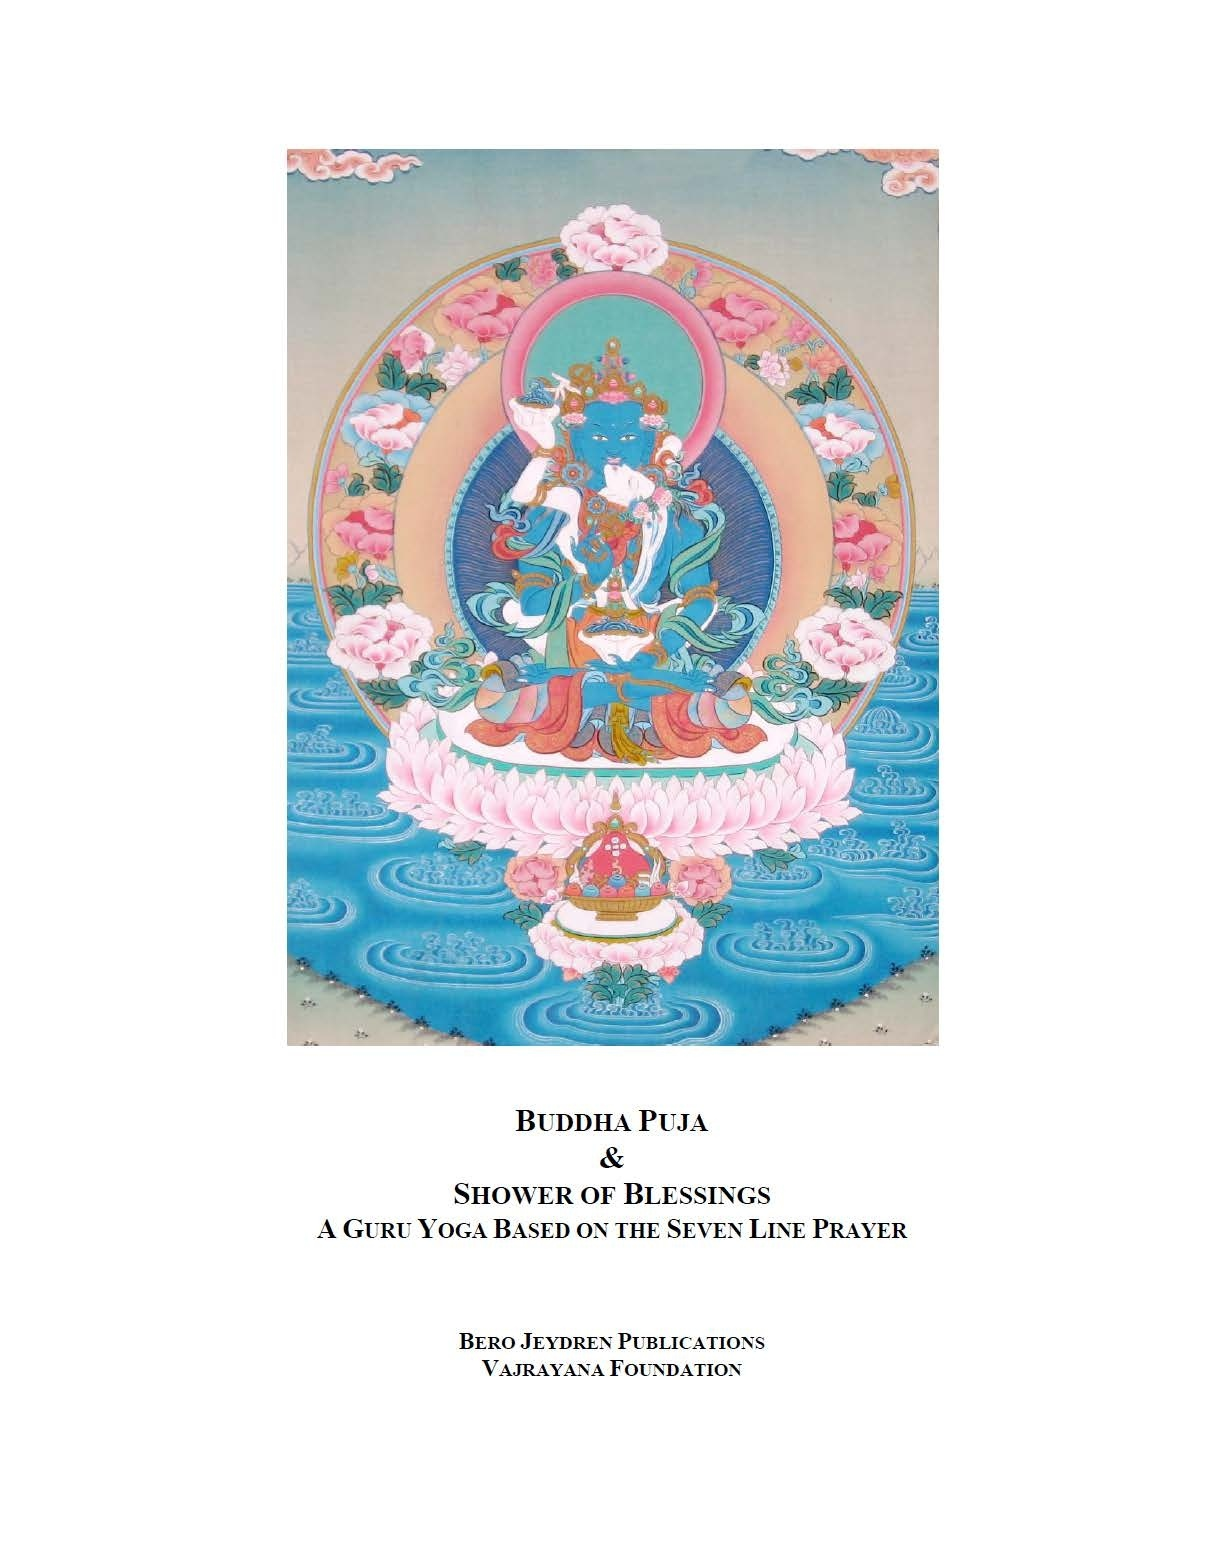 Buddha Puja and Shower of Blessings